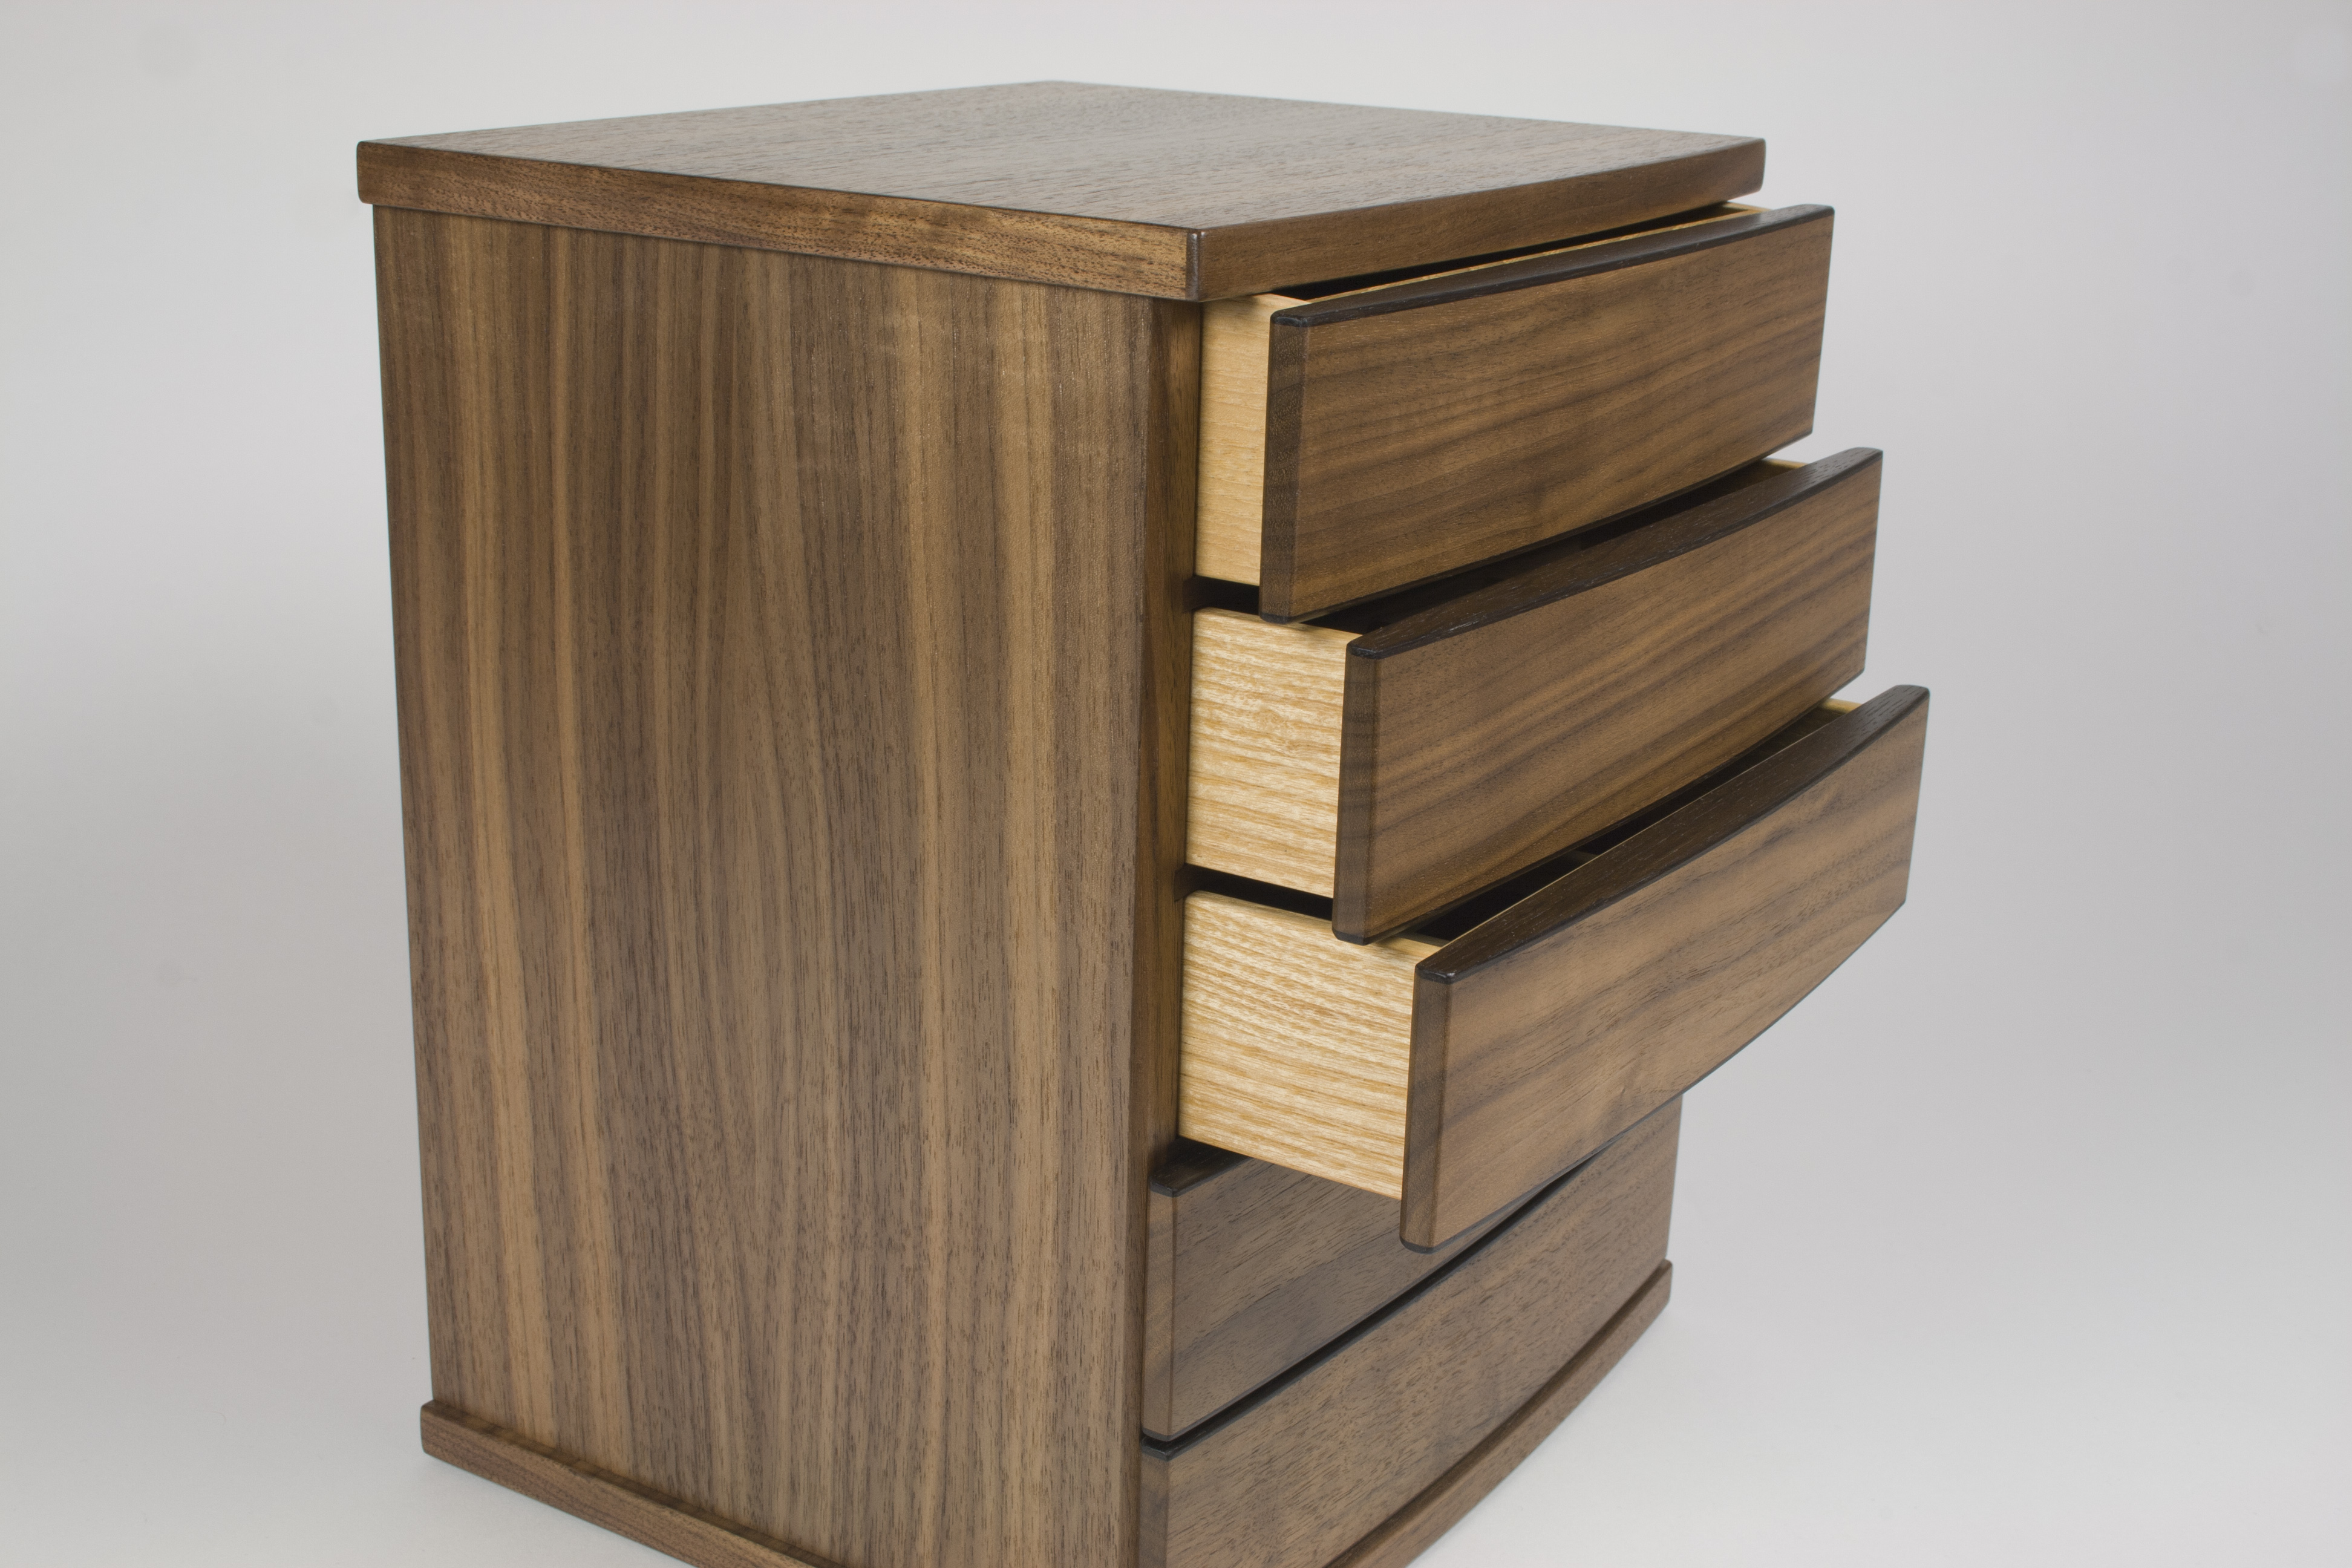 Three drawers of a jewellery chest